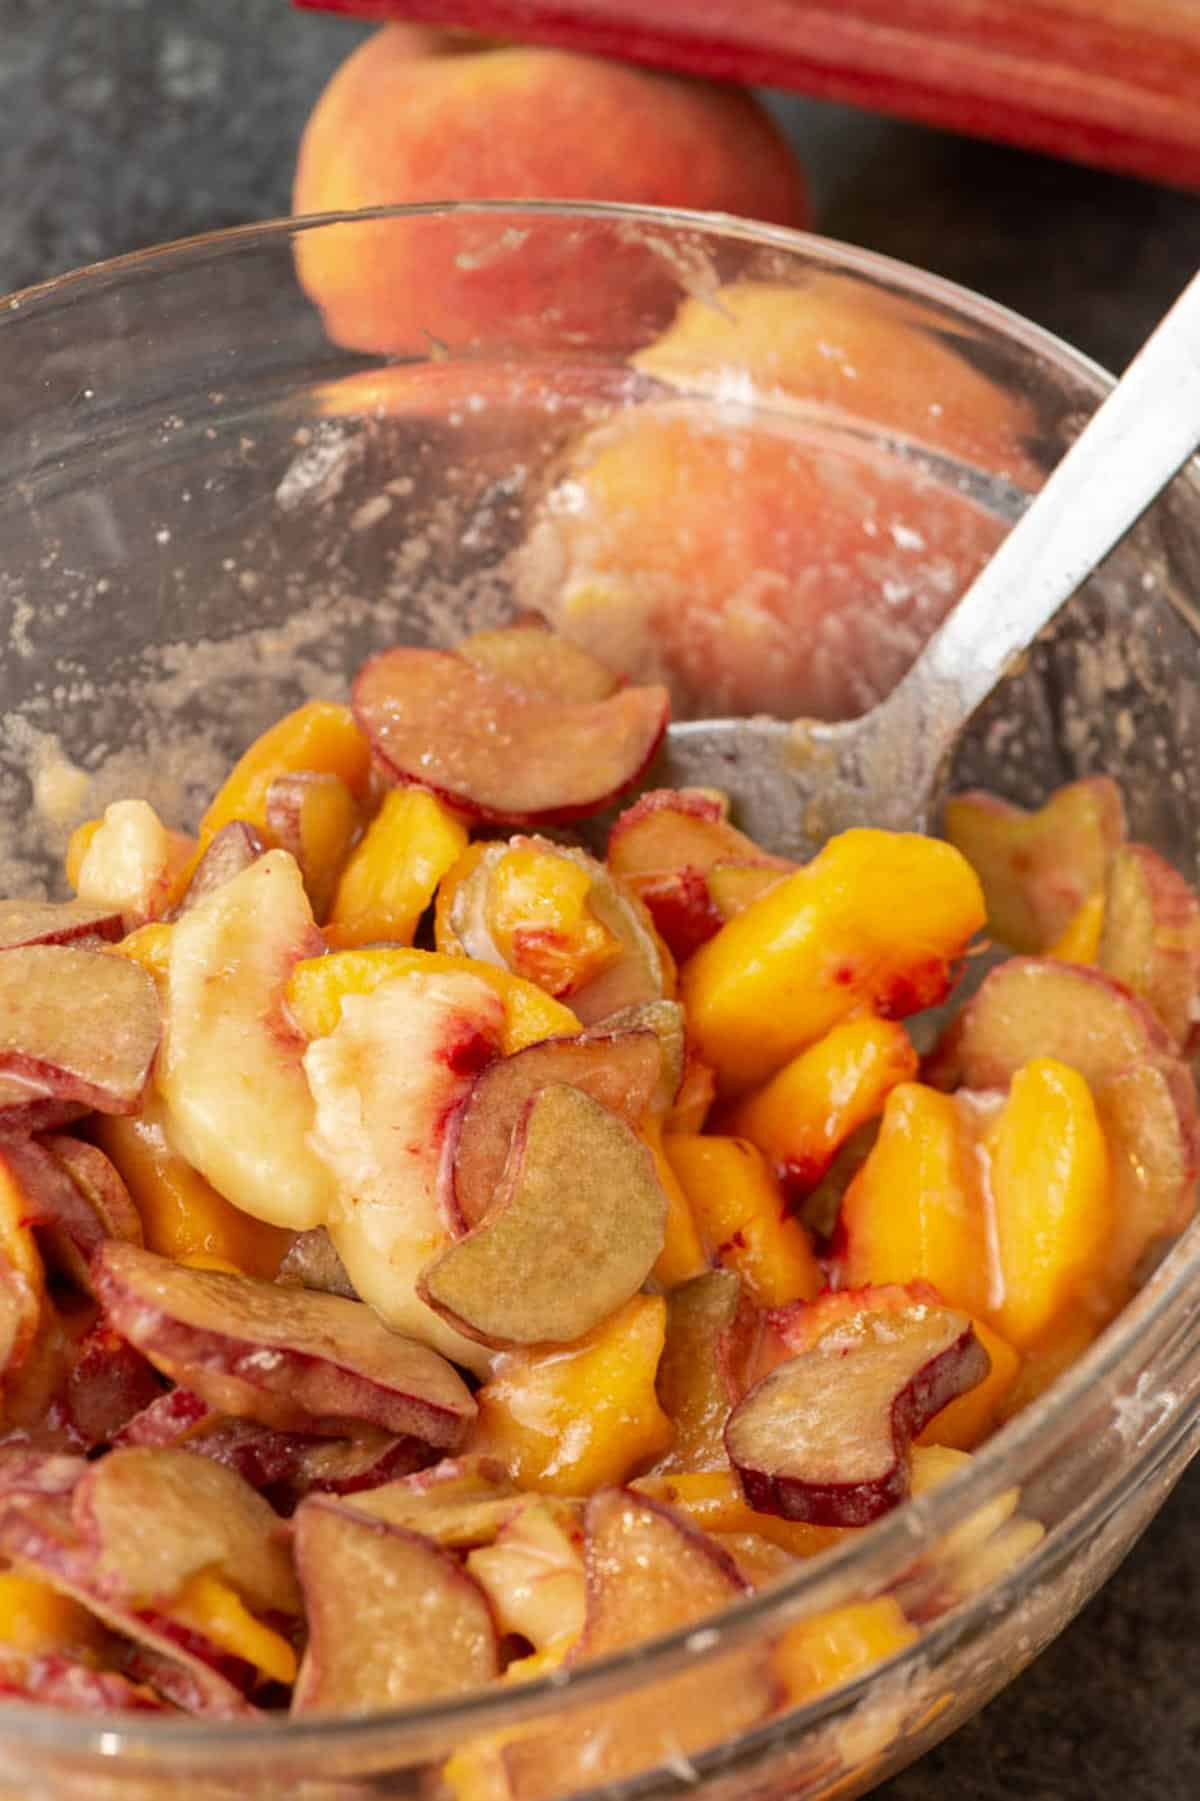 A bowl of peaches and rhubarb with sugar and cornstarch.